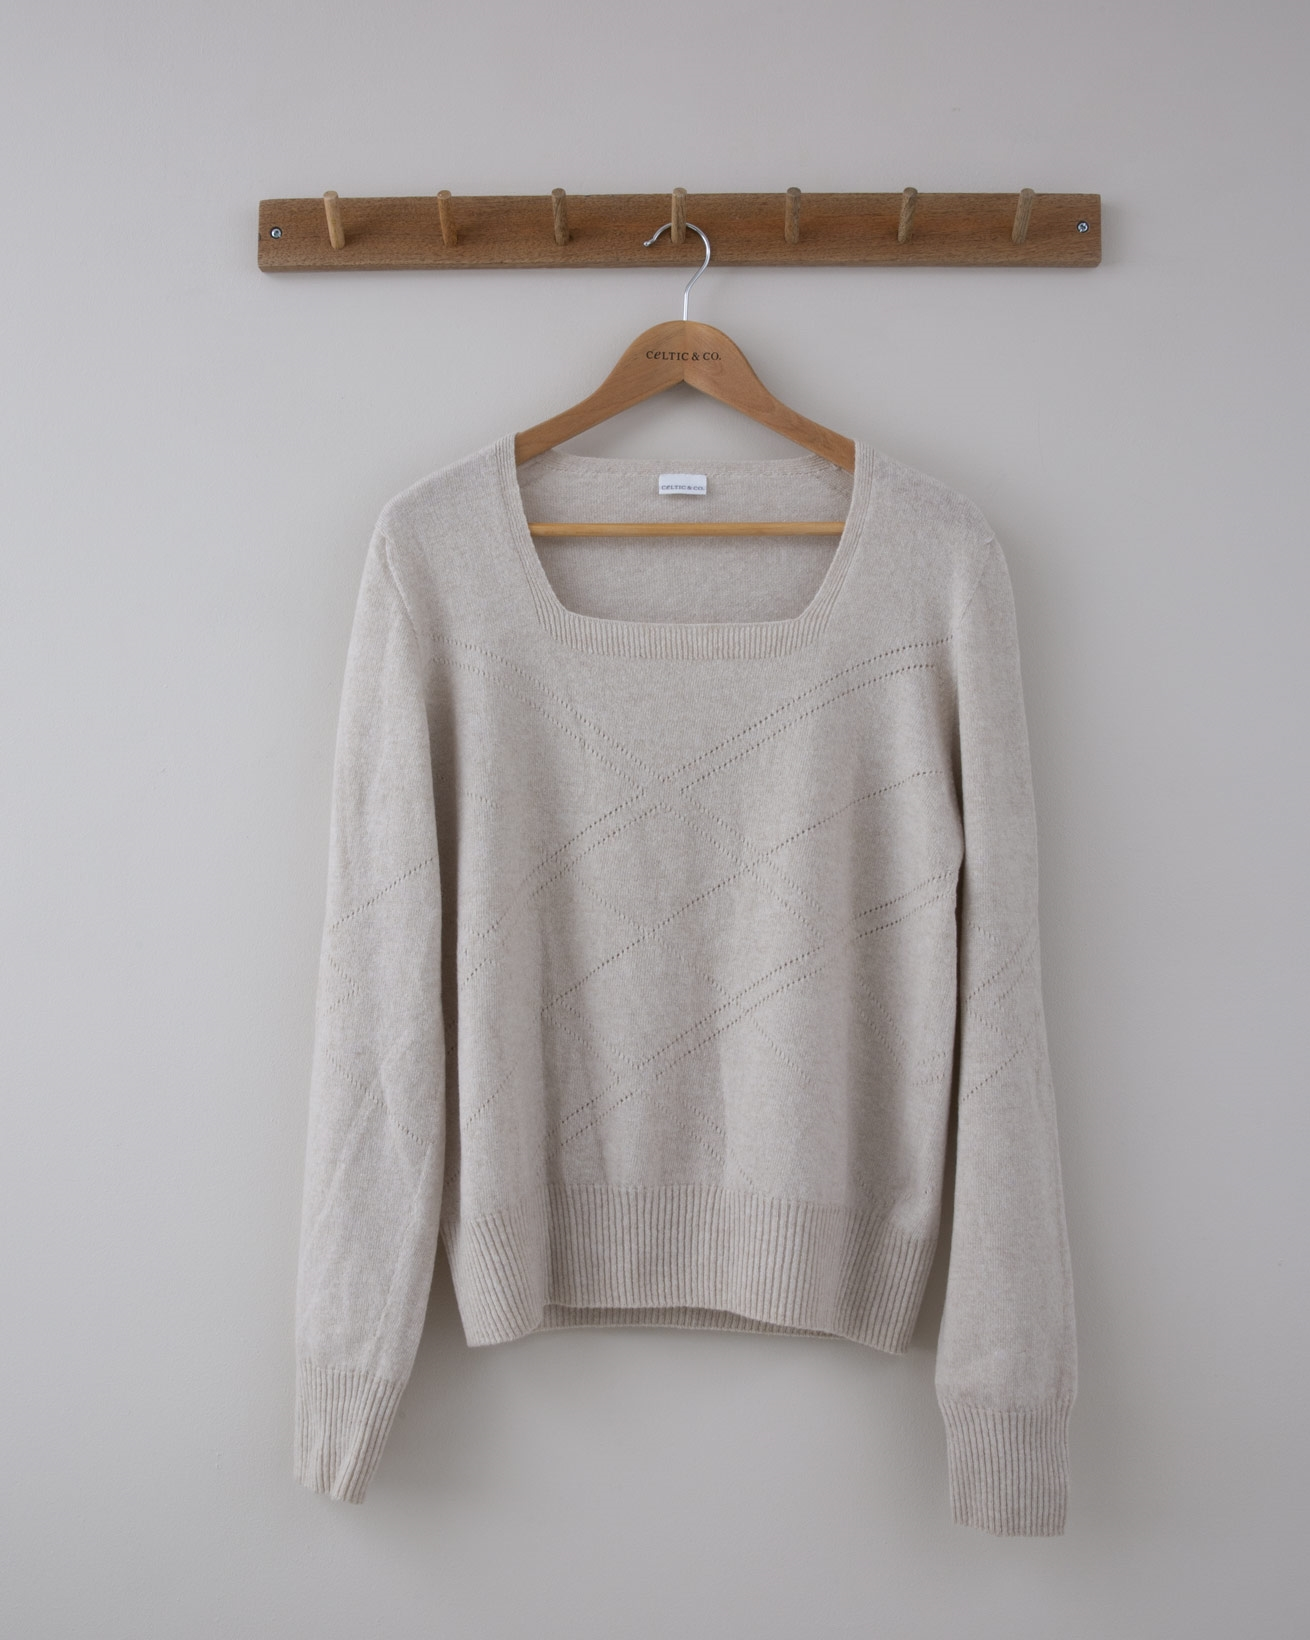 Square Neck Arglye Pointelle Jumper - Small - Oatmeal - 1285